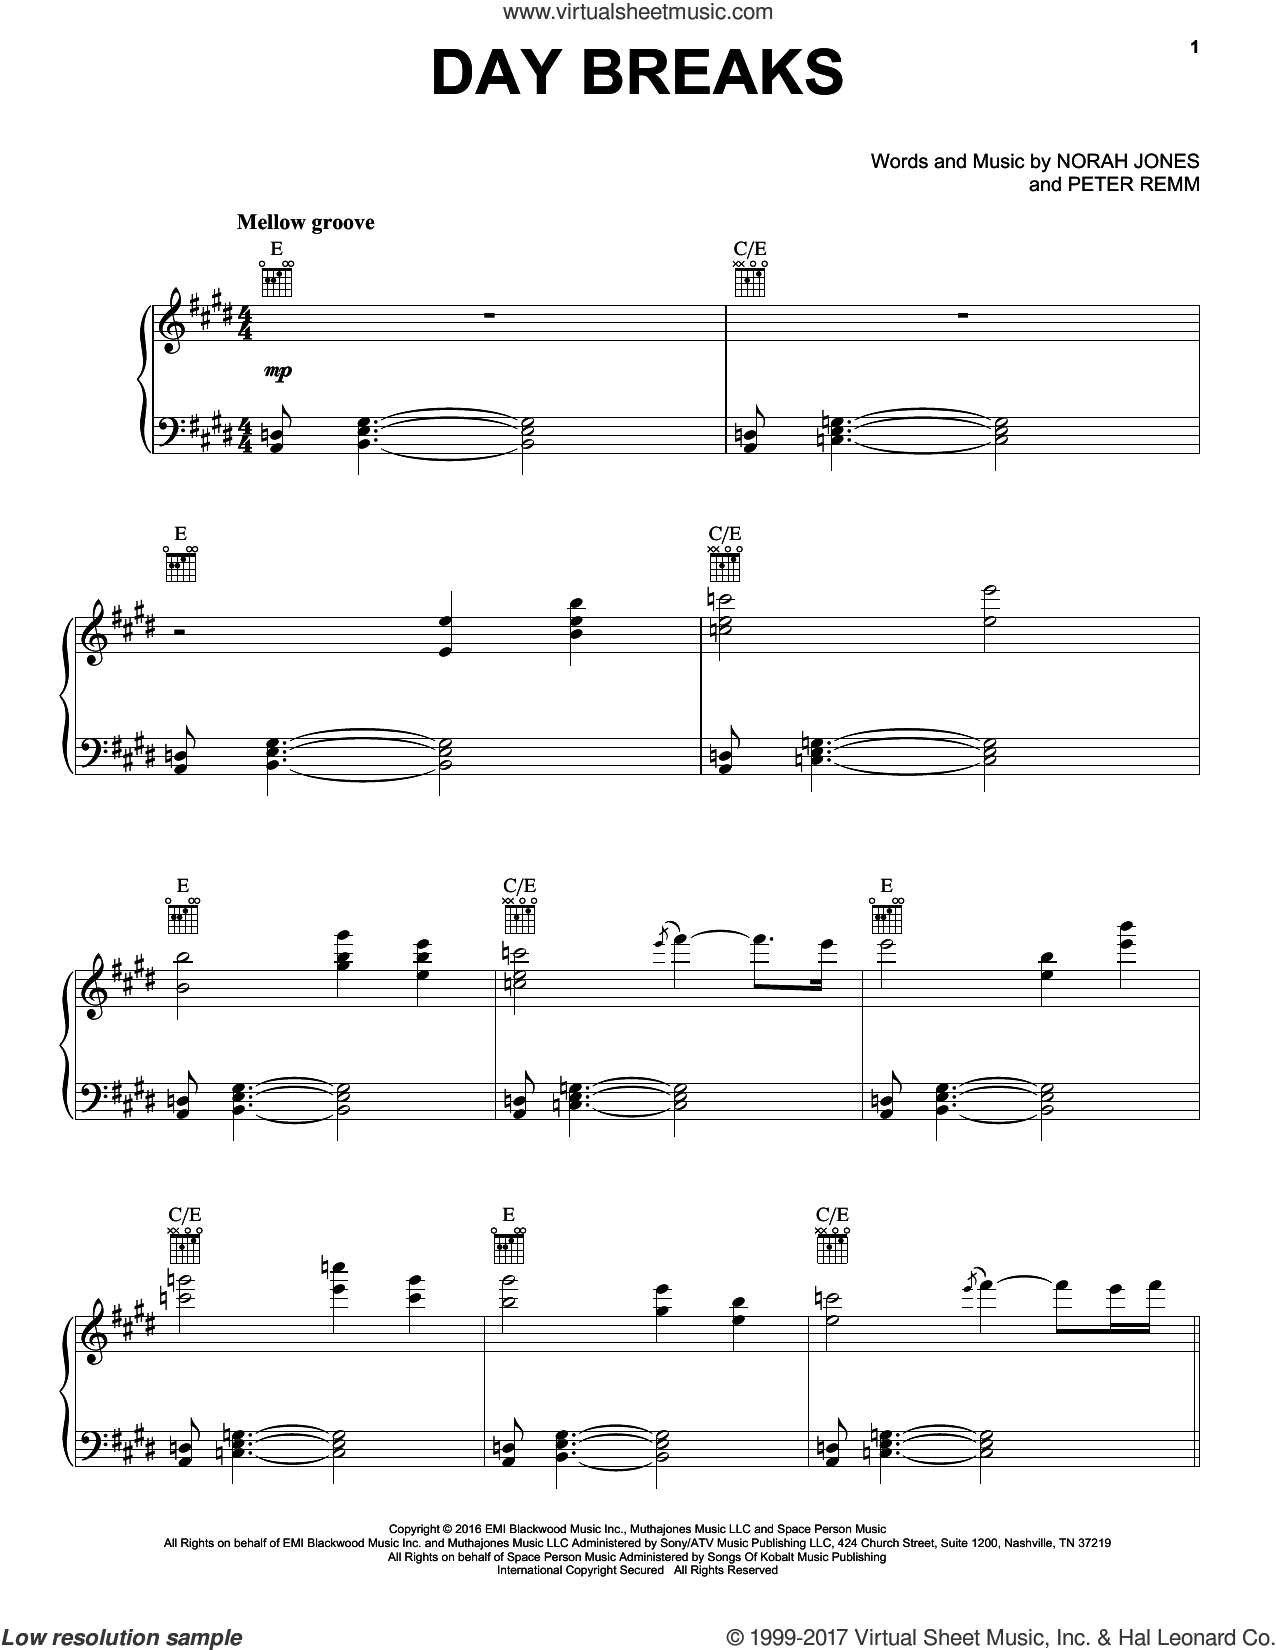 Day Breaks sheet music for voice, piano or guitar by Norah Jones and Peter Remm, intermediate skill level